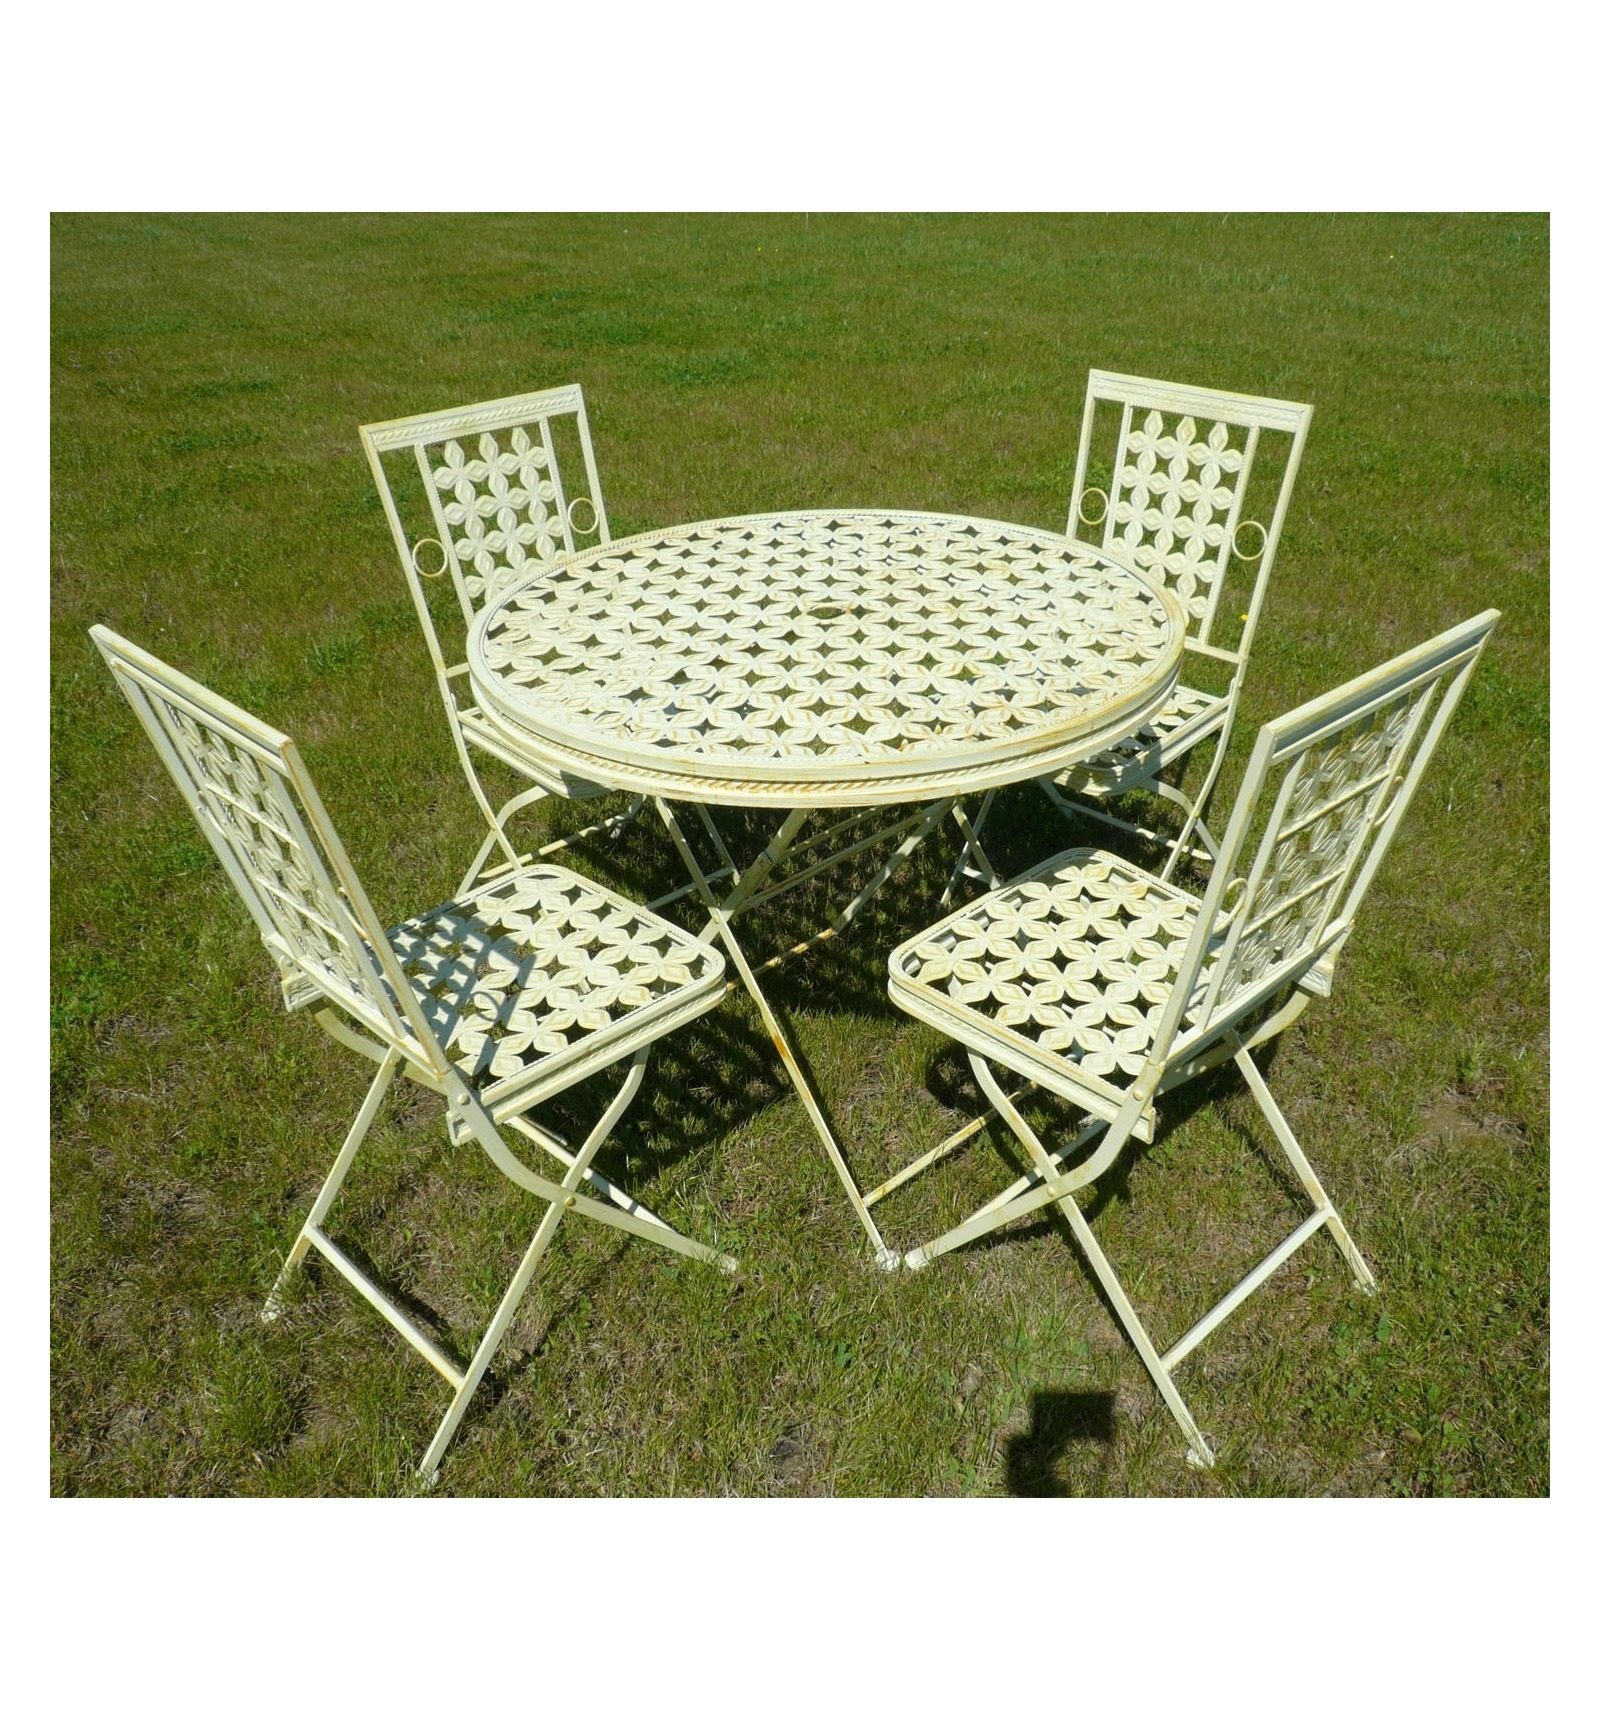 garden furniture in wrought iron with a round table and 4. Black Bedroom Furniture Sets. Home Design Ideas